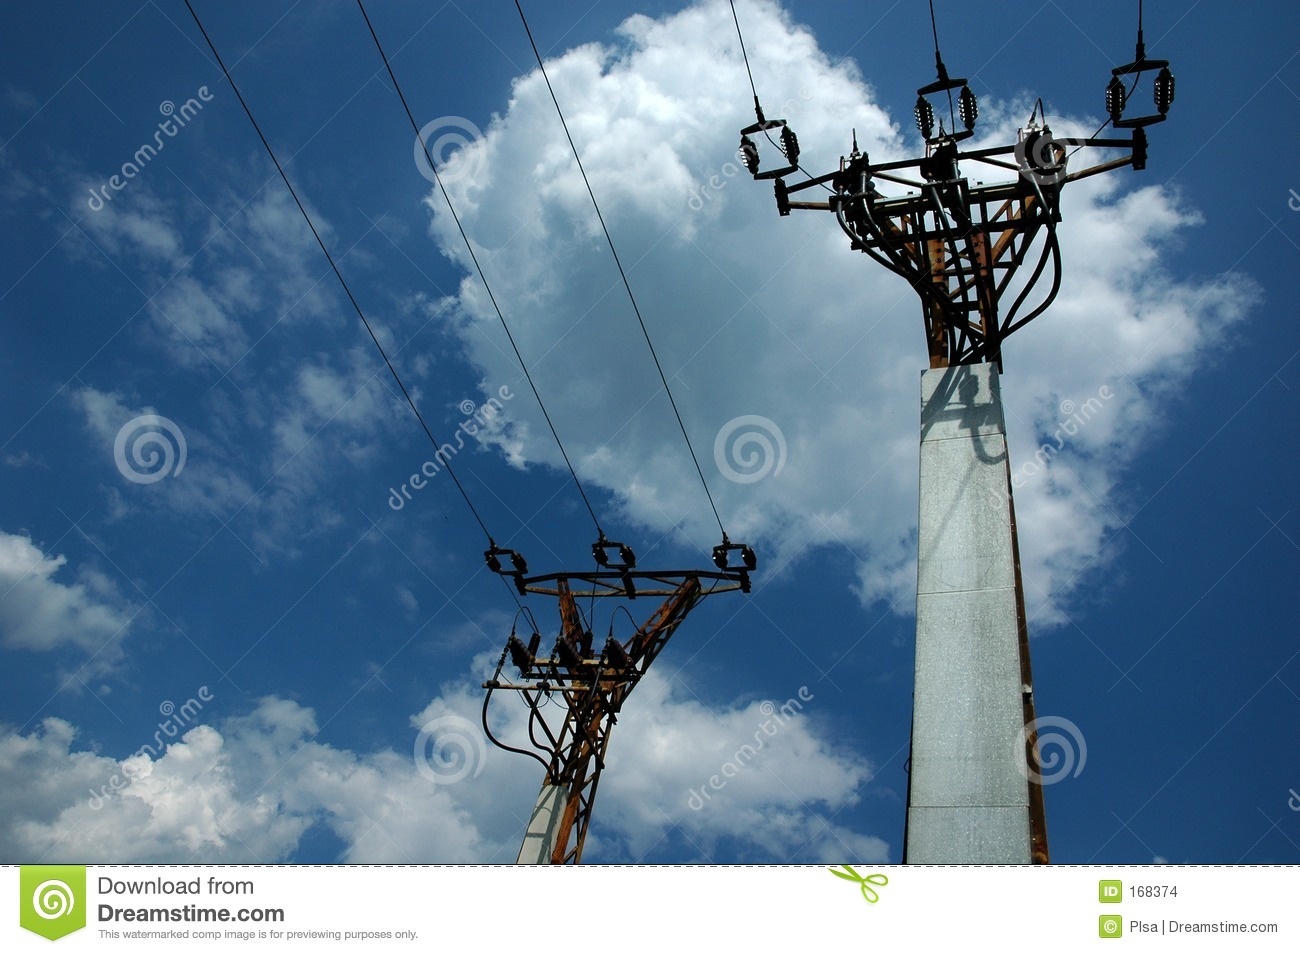 Two electric poles